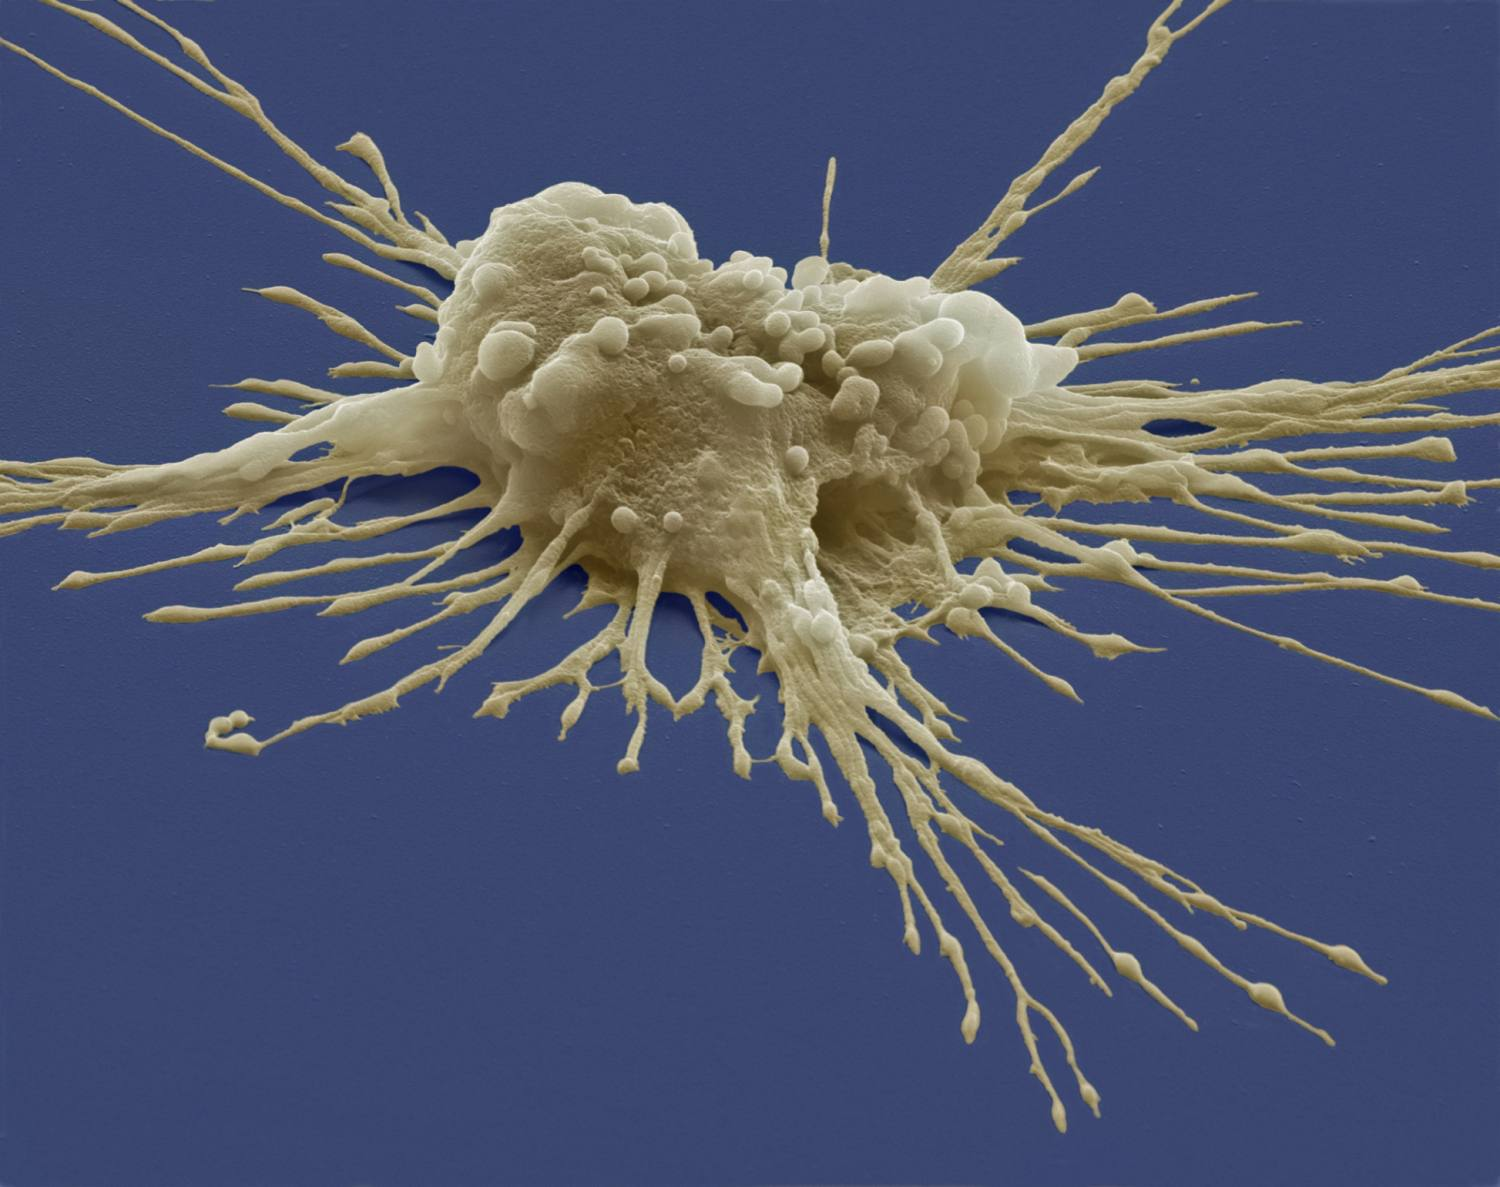 Pluripotent stem cell on a blue background.